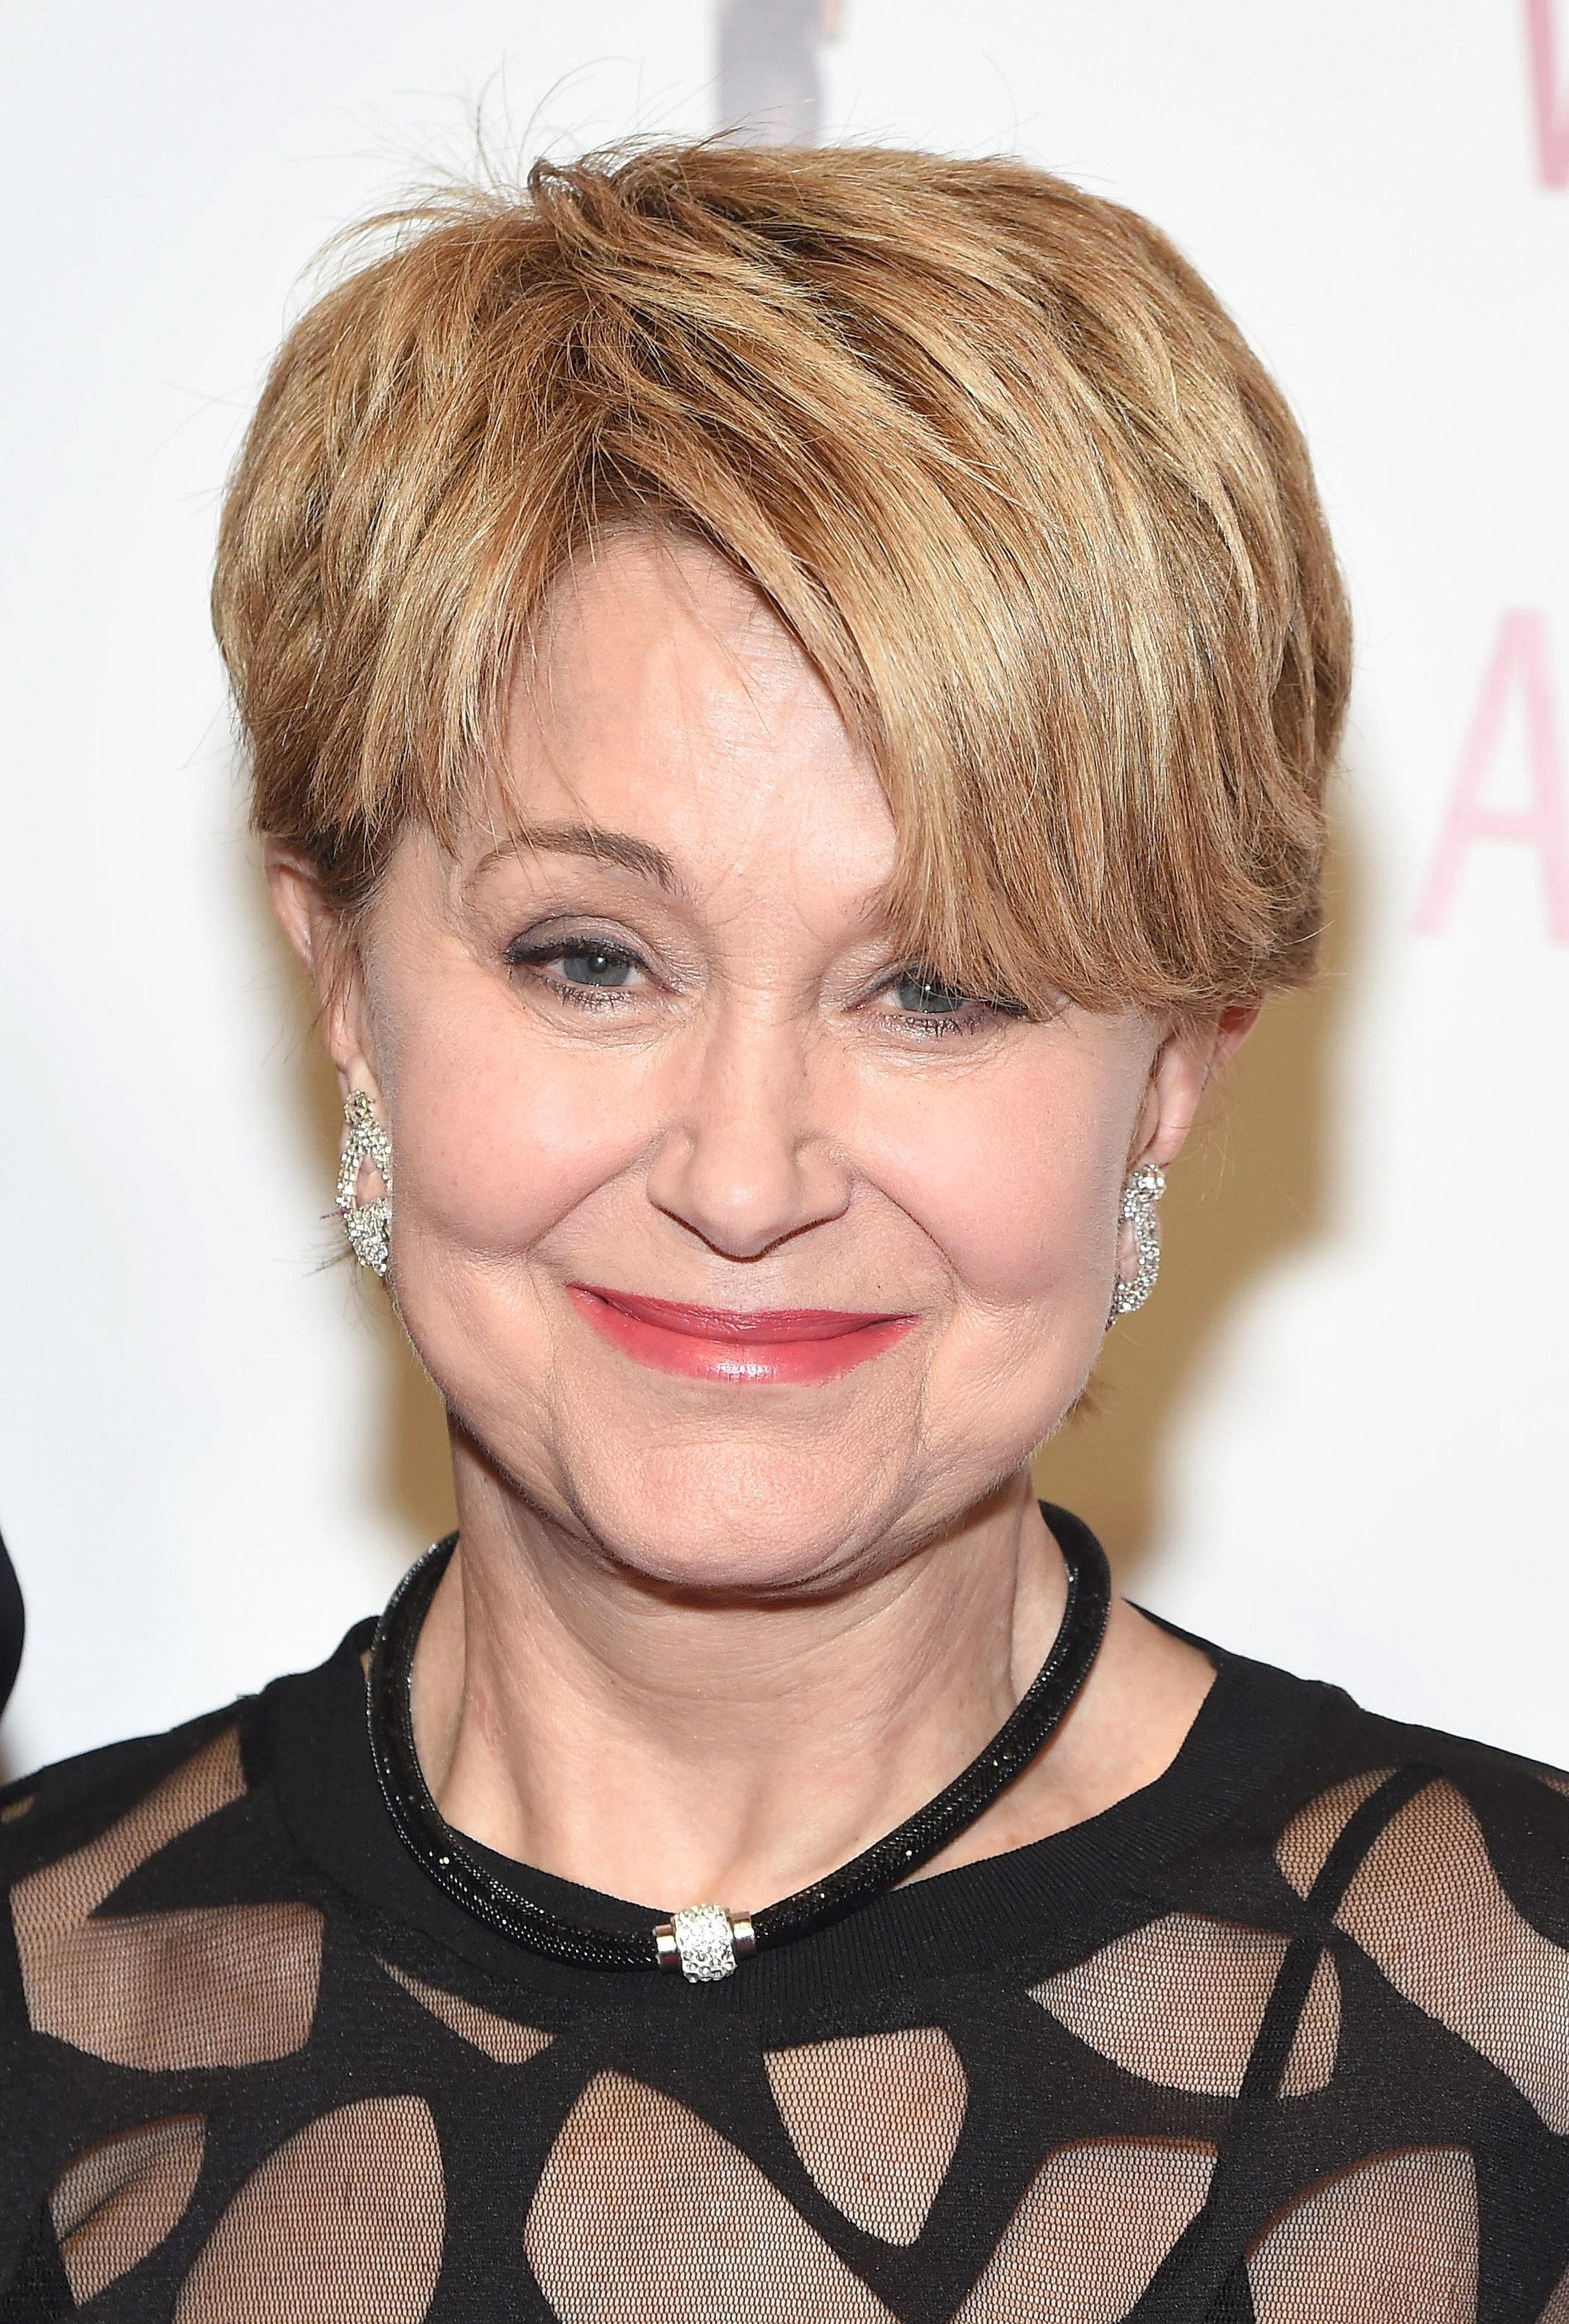 Jane Pauley on February 11, 2018 in New York City | Source: Getty Images